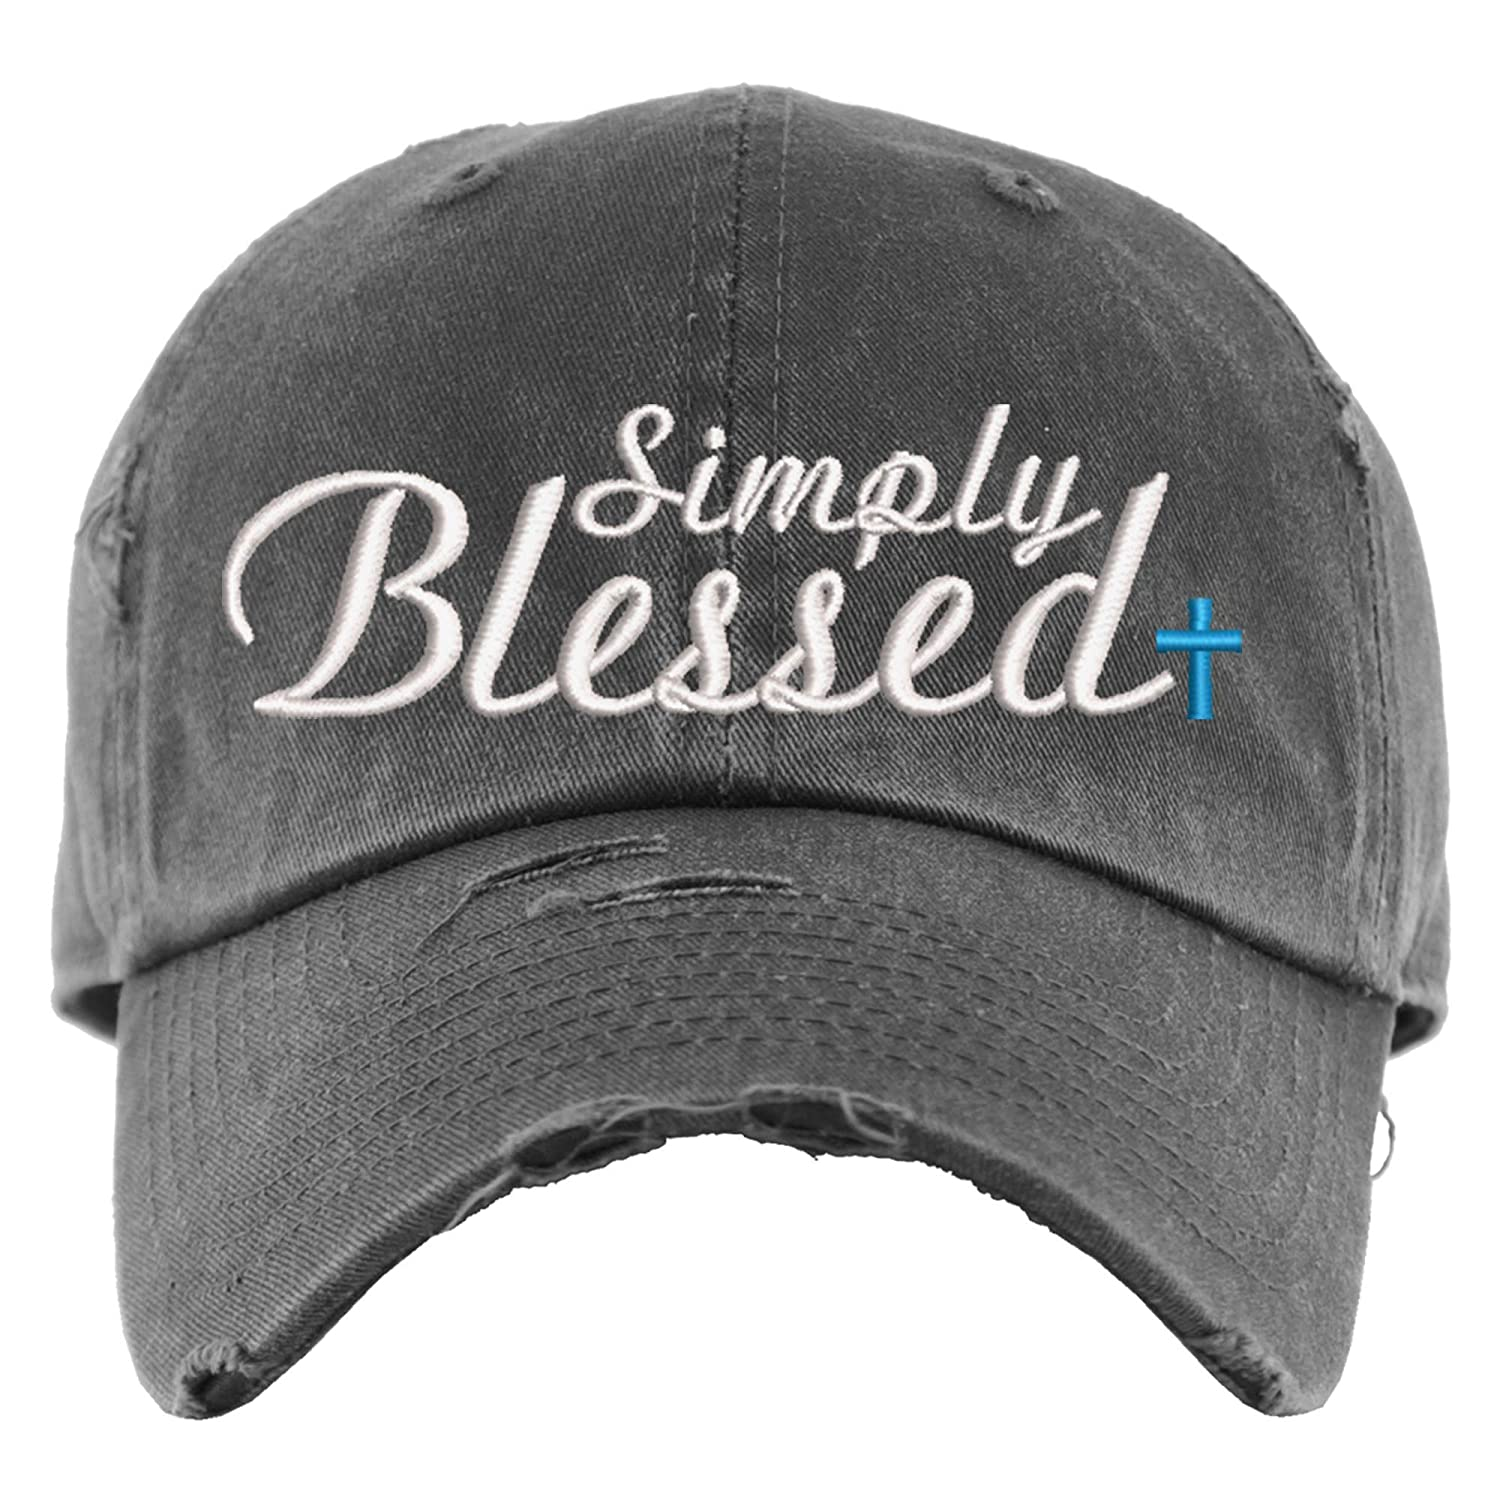 Max 56% OFF Simply Bombing new work Blessed Hat Distressed Baseball E Cap Ponytail OR